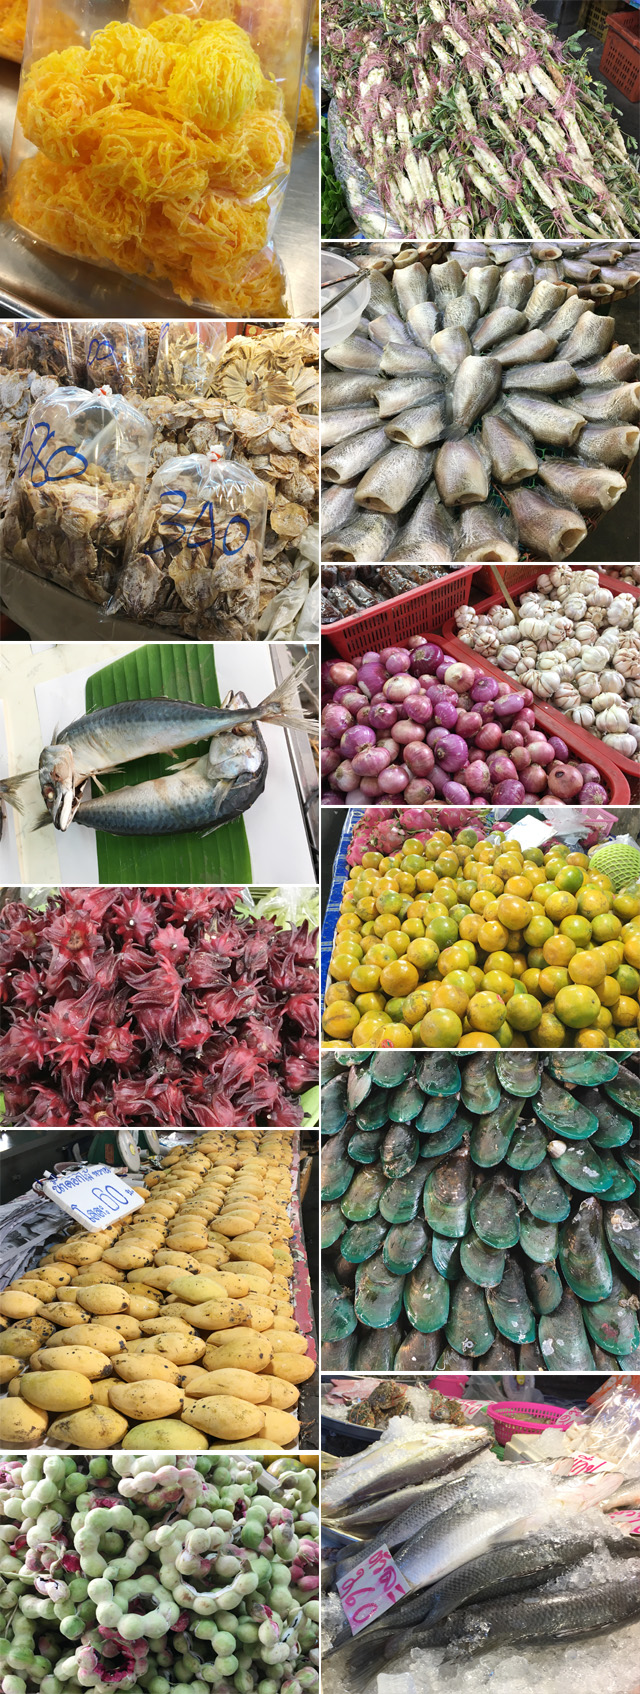 Several photos of fruits, seafood, meat, vegetables, an dried foods